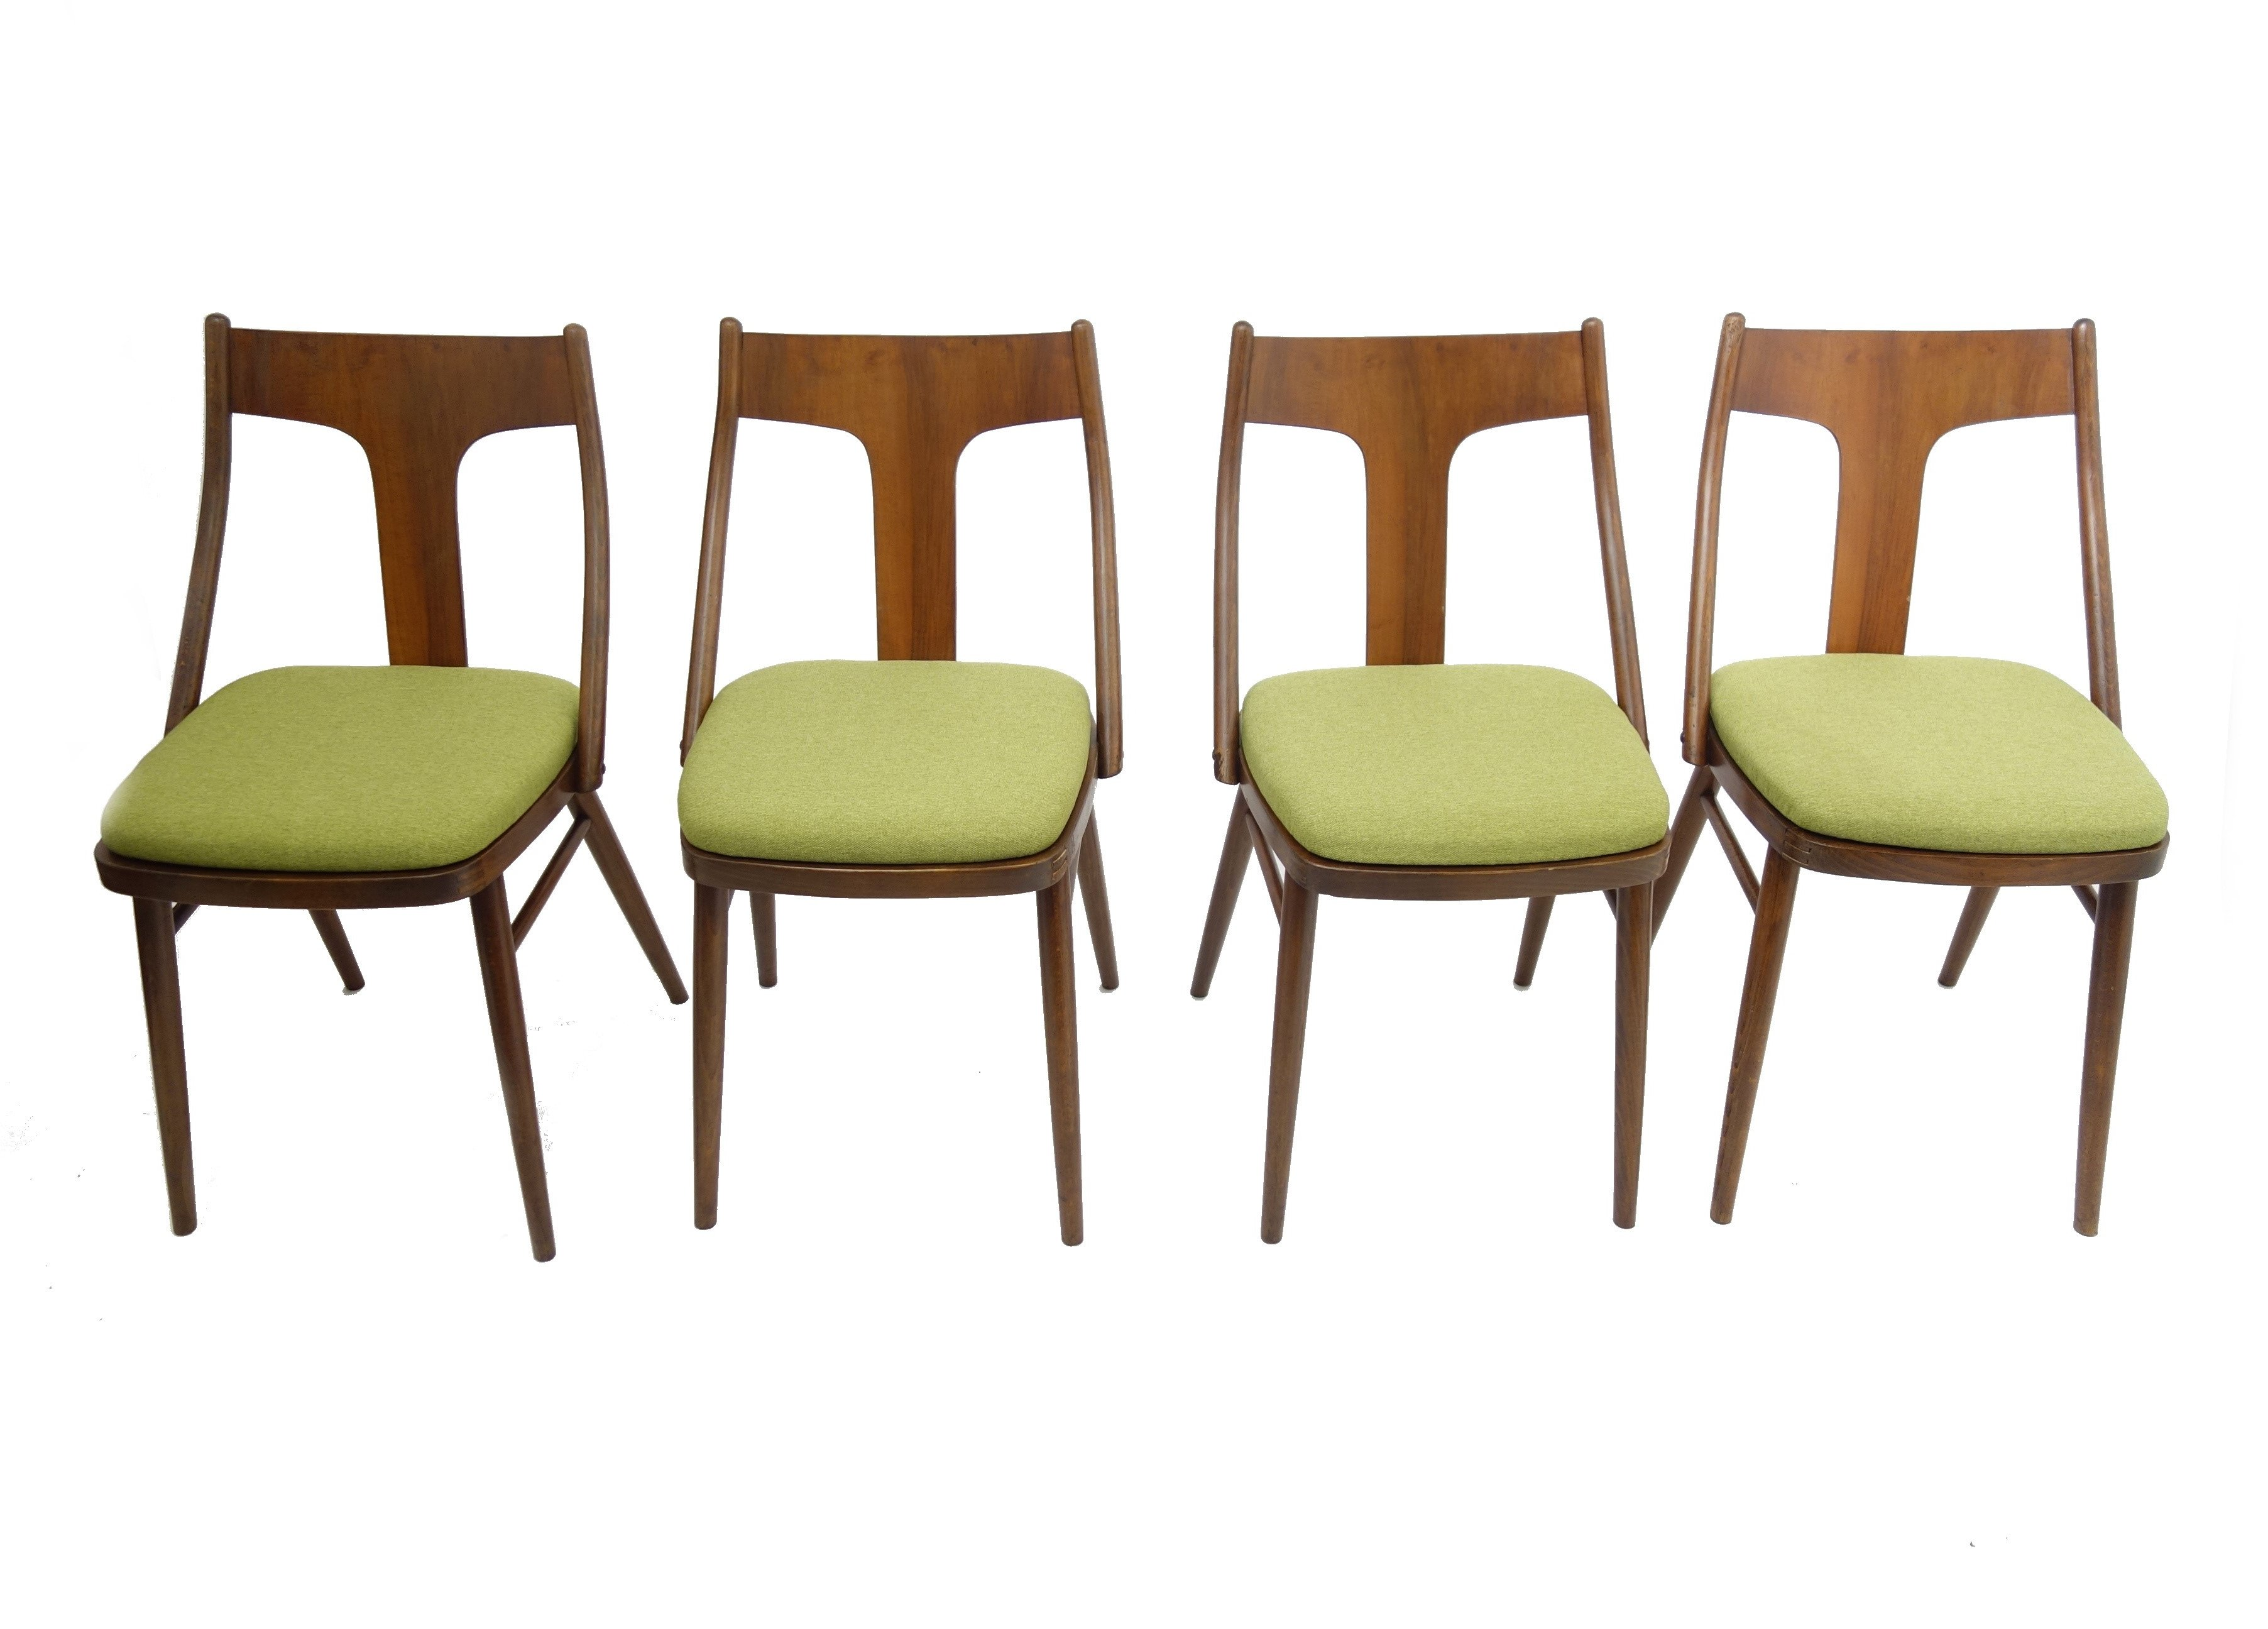 Remarkable Set Of 4 Vintage Dining Chairs 1960S Alphanode Cool Chair Designs And Ideas Alphanodeonline